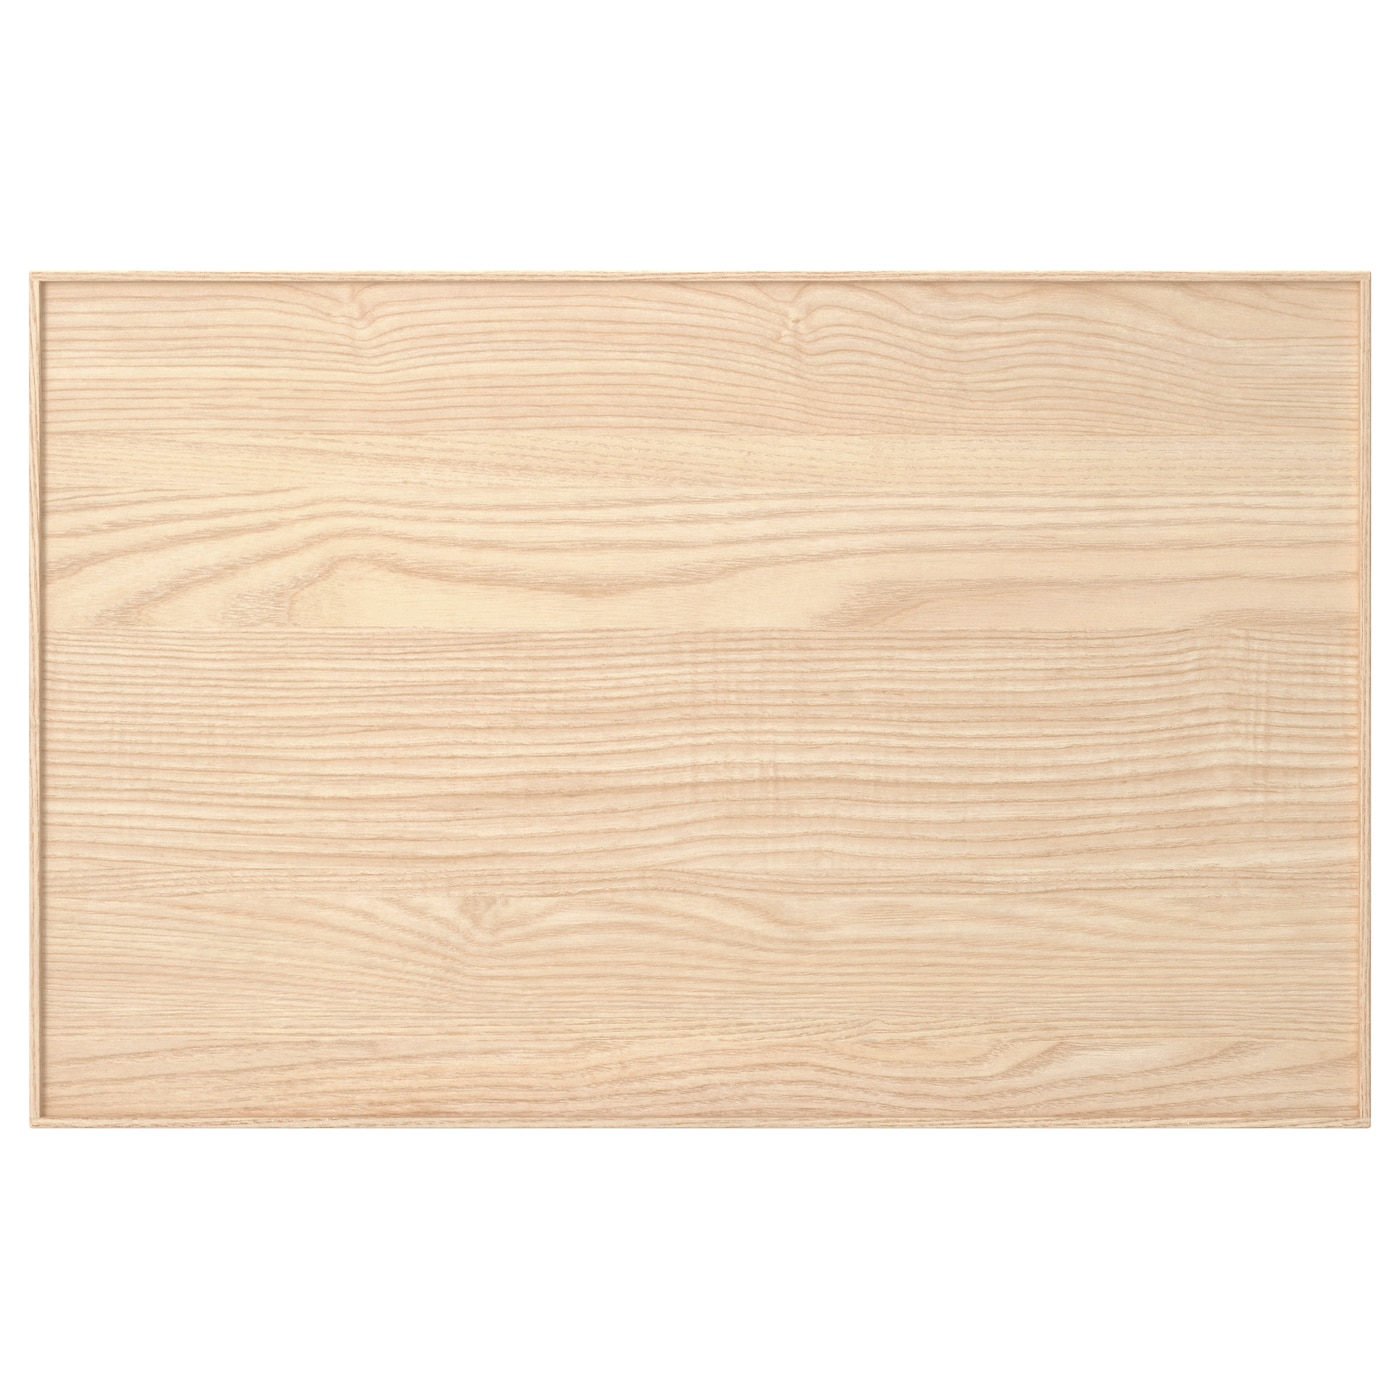 IKEA INVIKEN door/drawer front Veneer is a durable natural material.